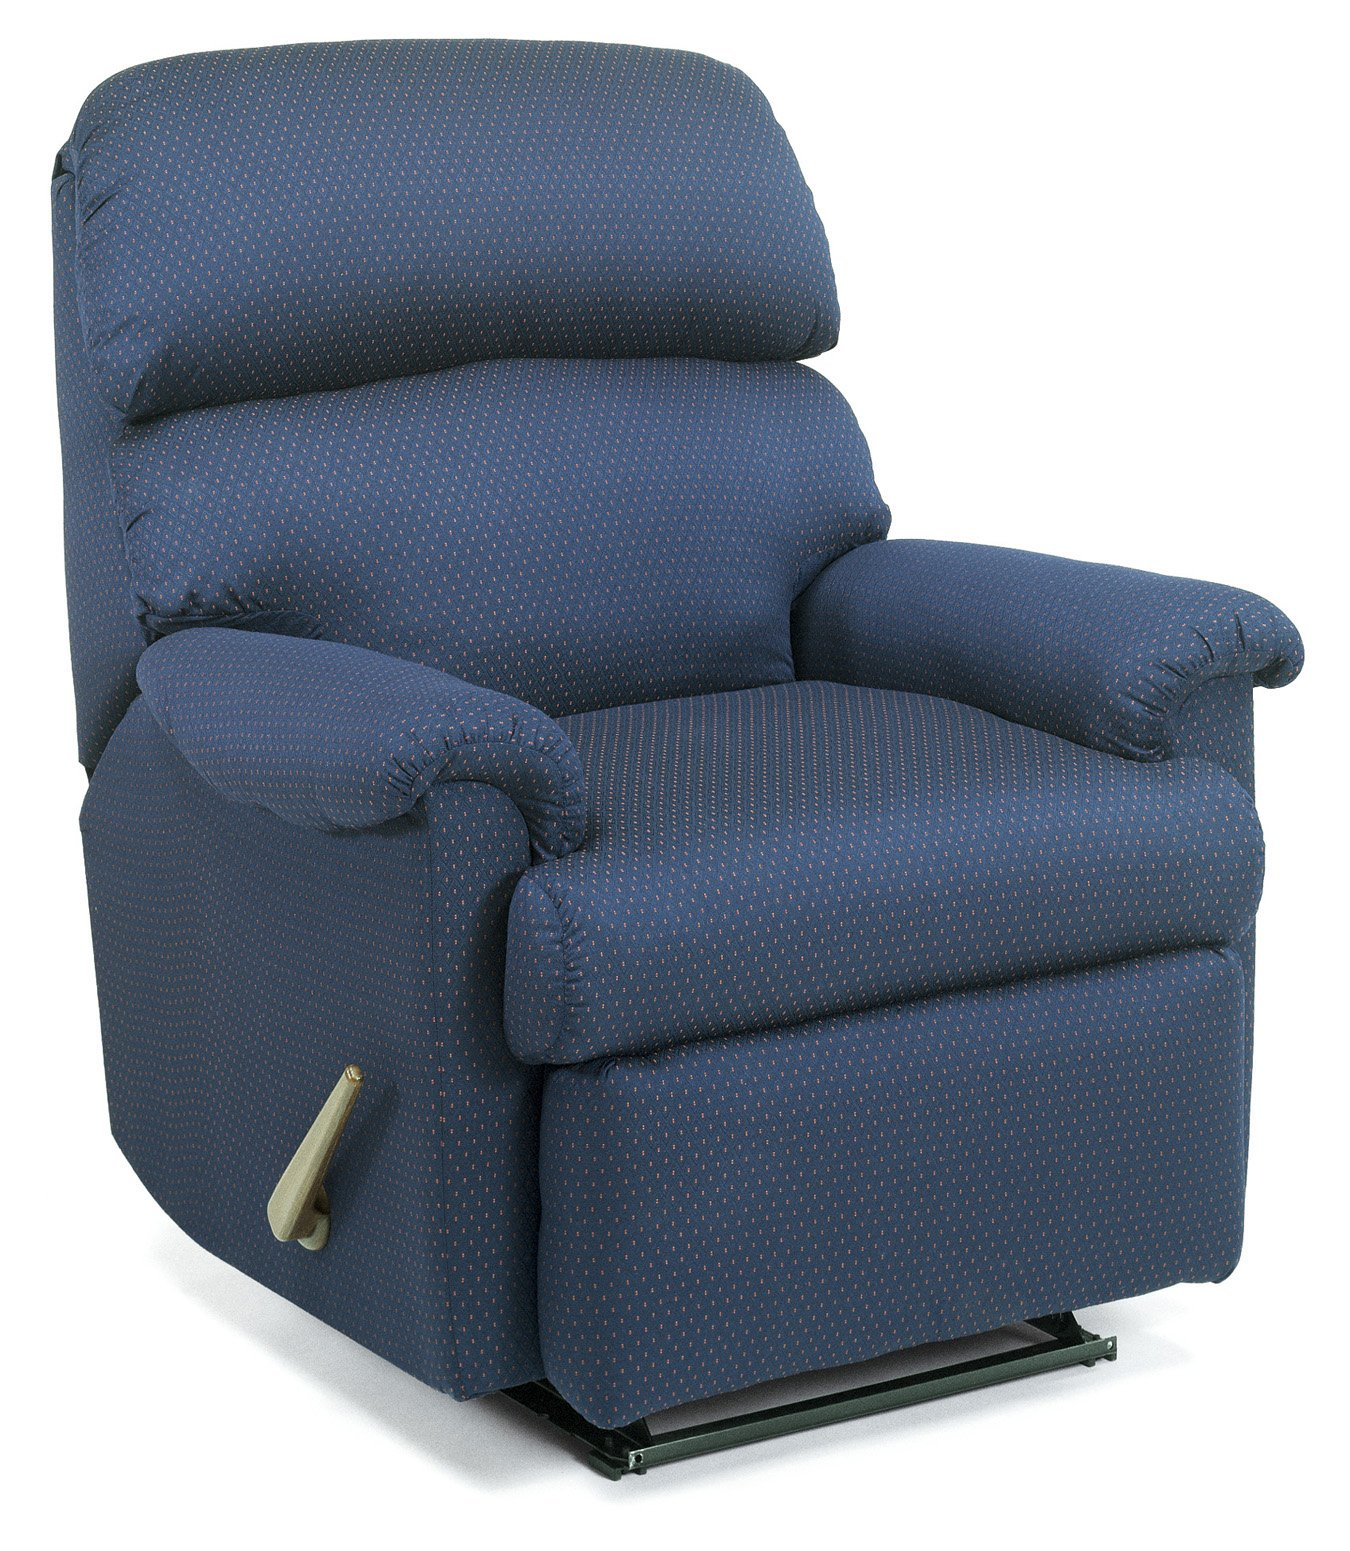 Pleasing Heavy Duty Firefighter Recliner W Padded Arms Flexsteel Pabps2019 Chair Design Images Pabps2019Com